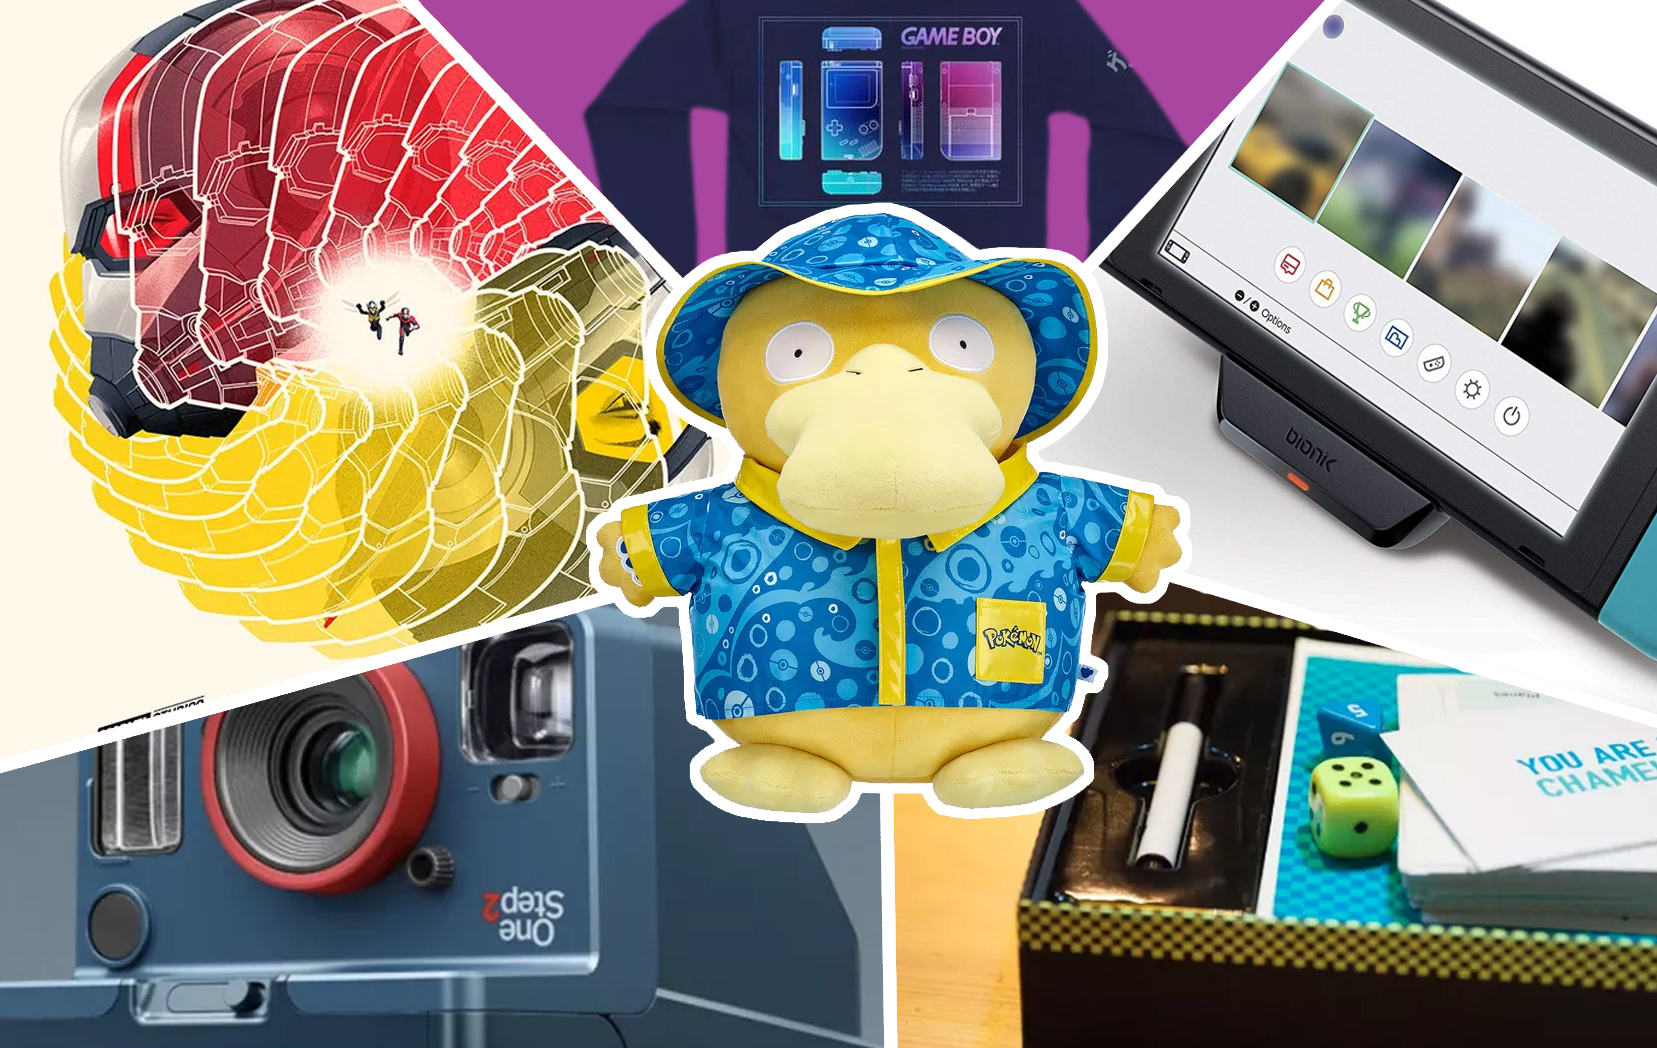 Back to School 2019 gift guide collage, with build-a-bear Psyduck in the middle. Also featuring Switch accessories, Game Boy-themed sweater, Ant-Man poster, Stranger Things Polaroid camera, and a board game with dice